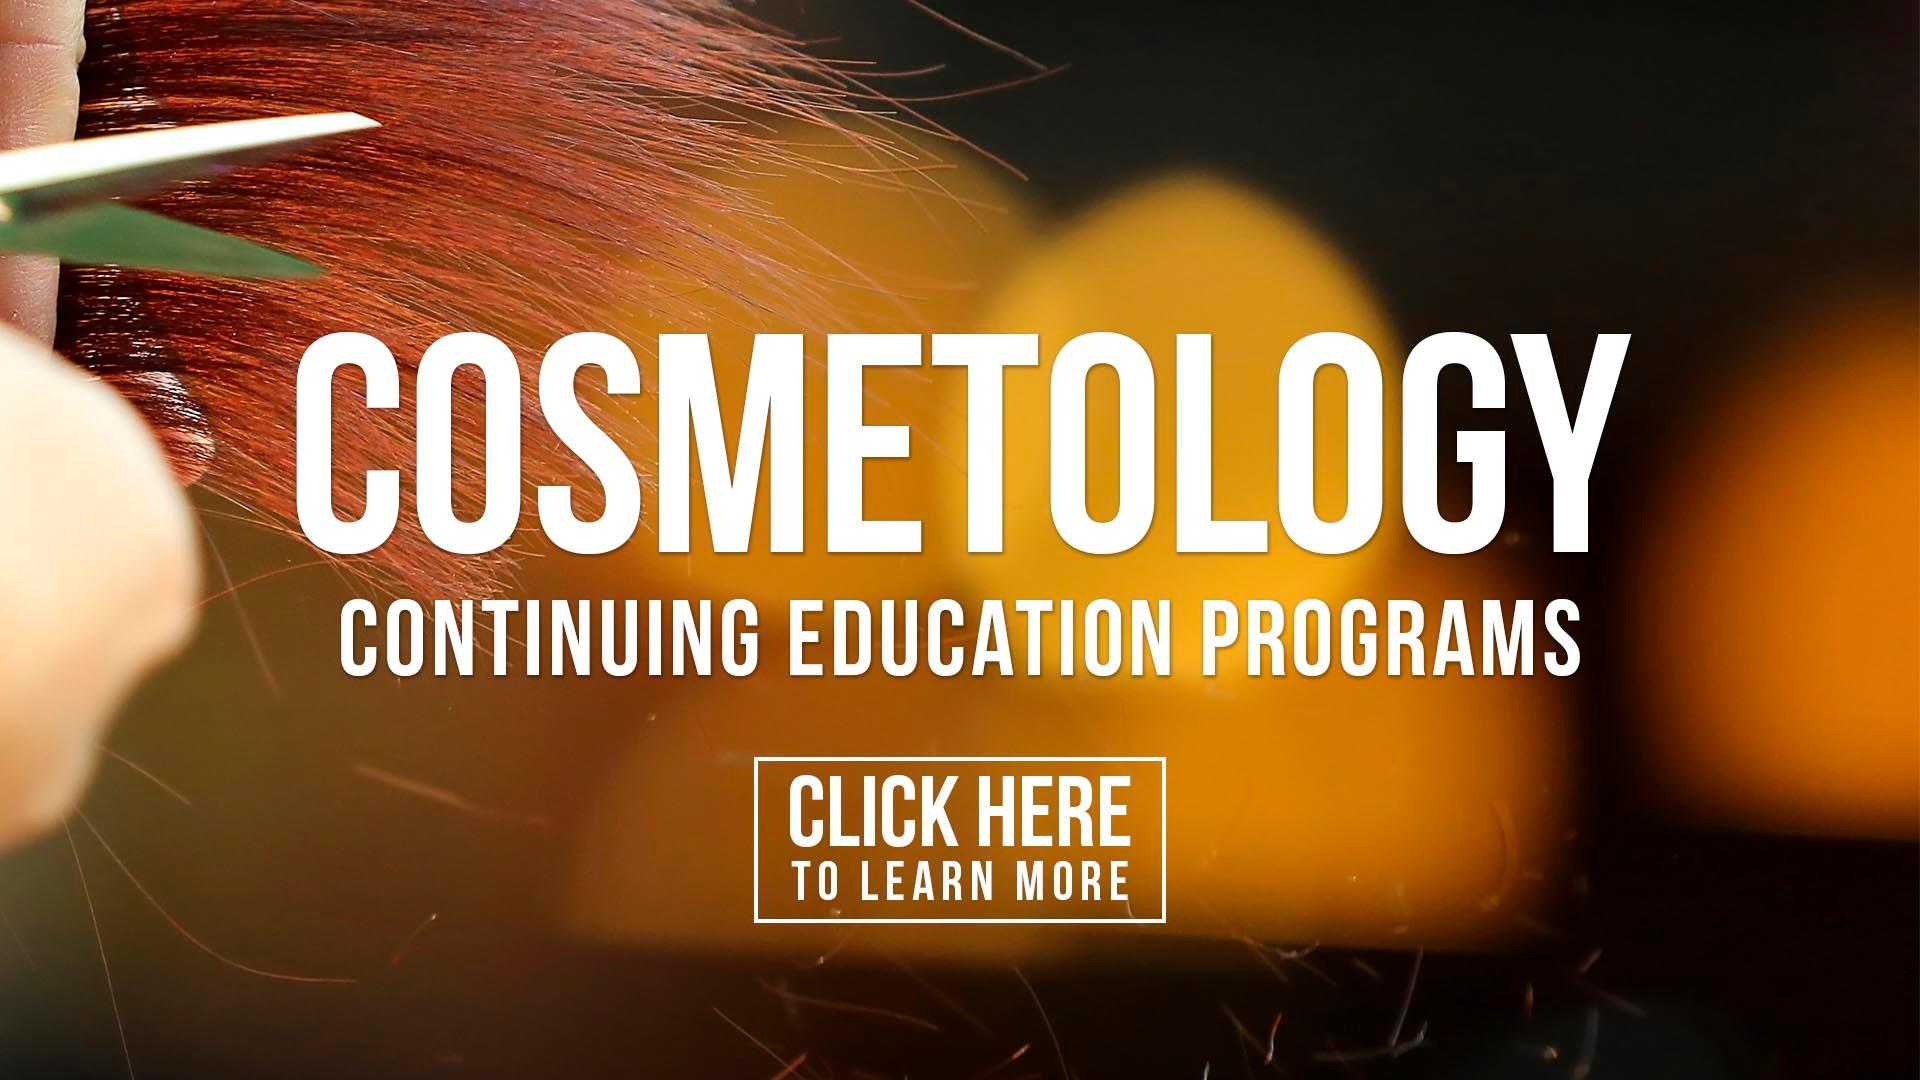 Cosmetology Continuing Education. Click here to learn more.